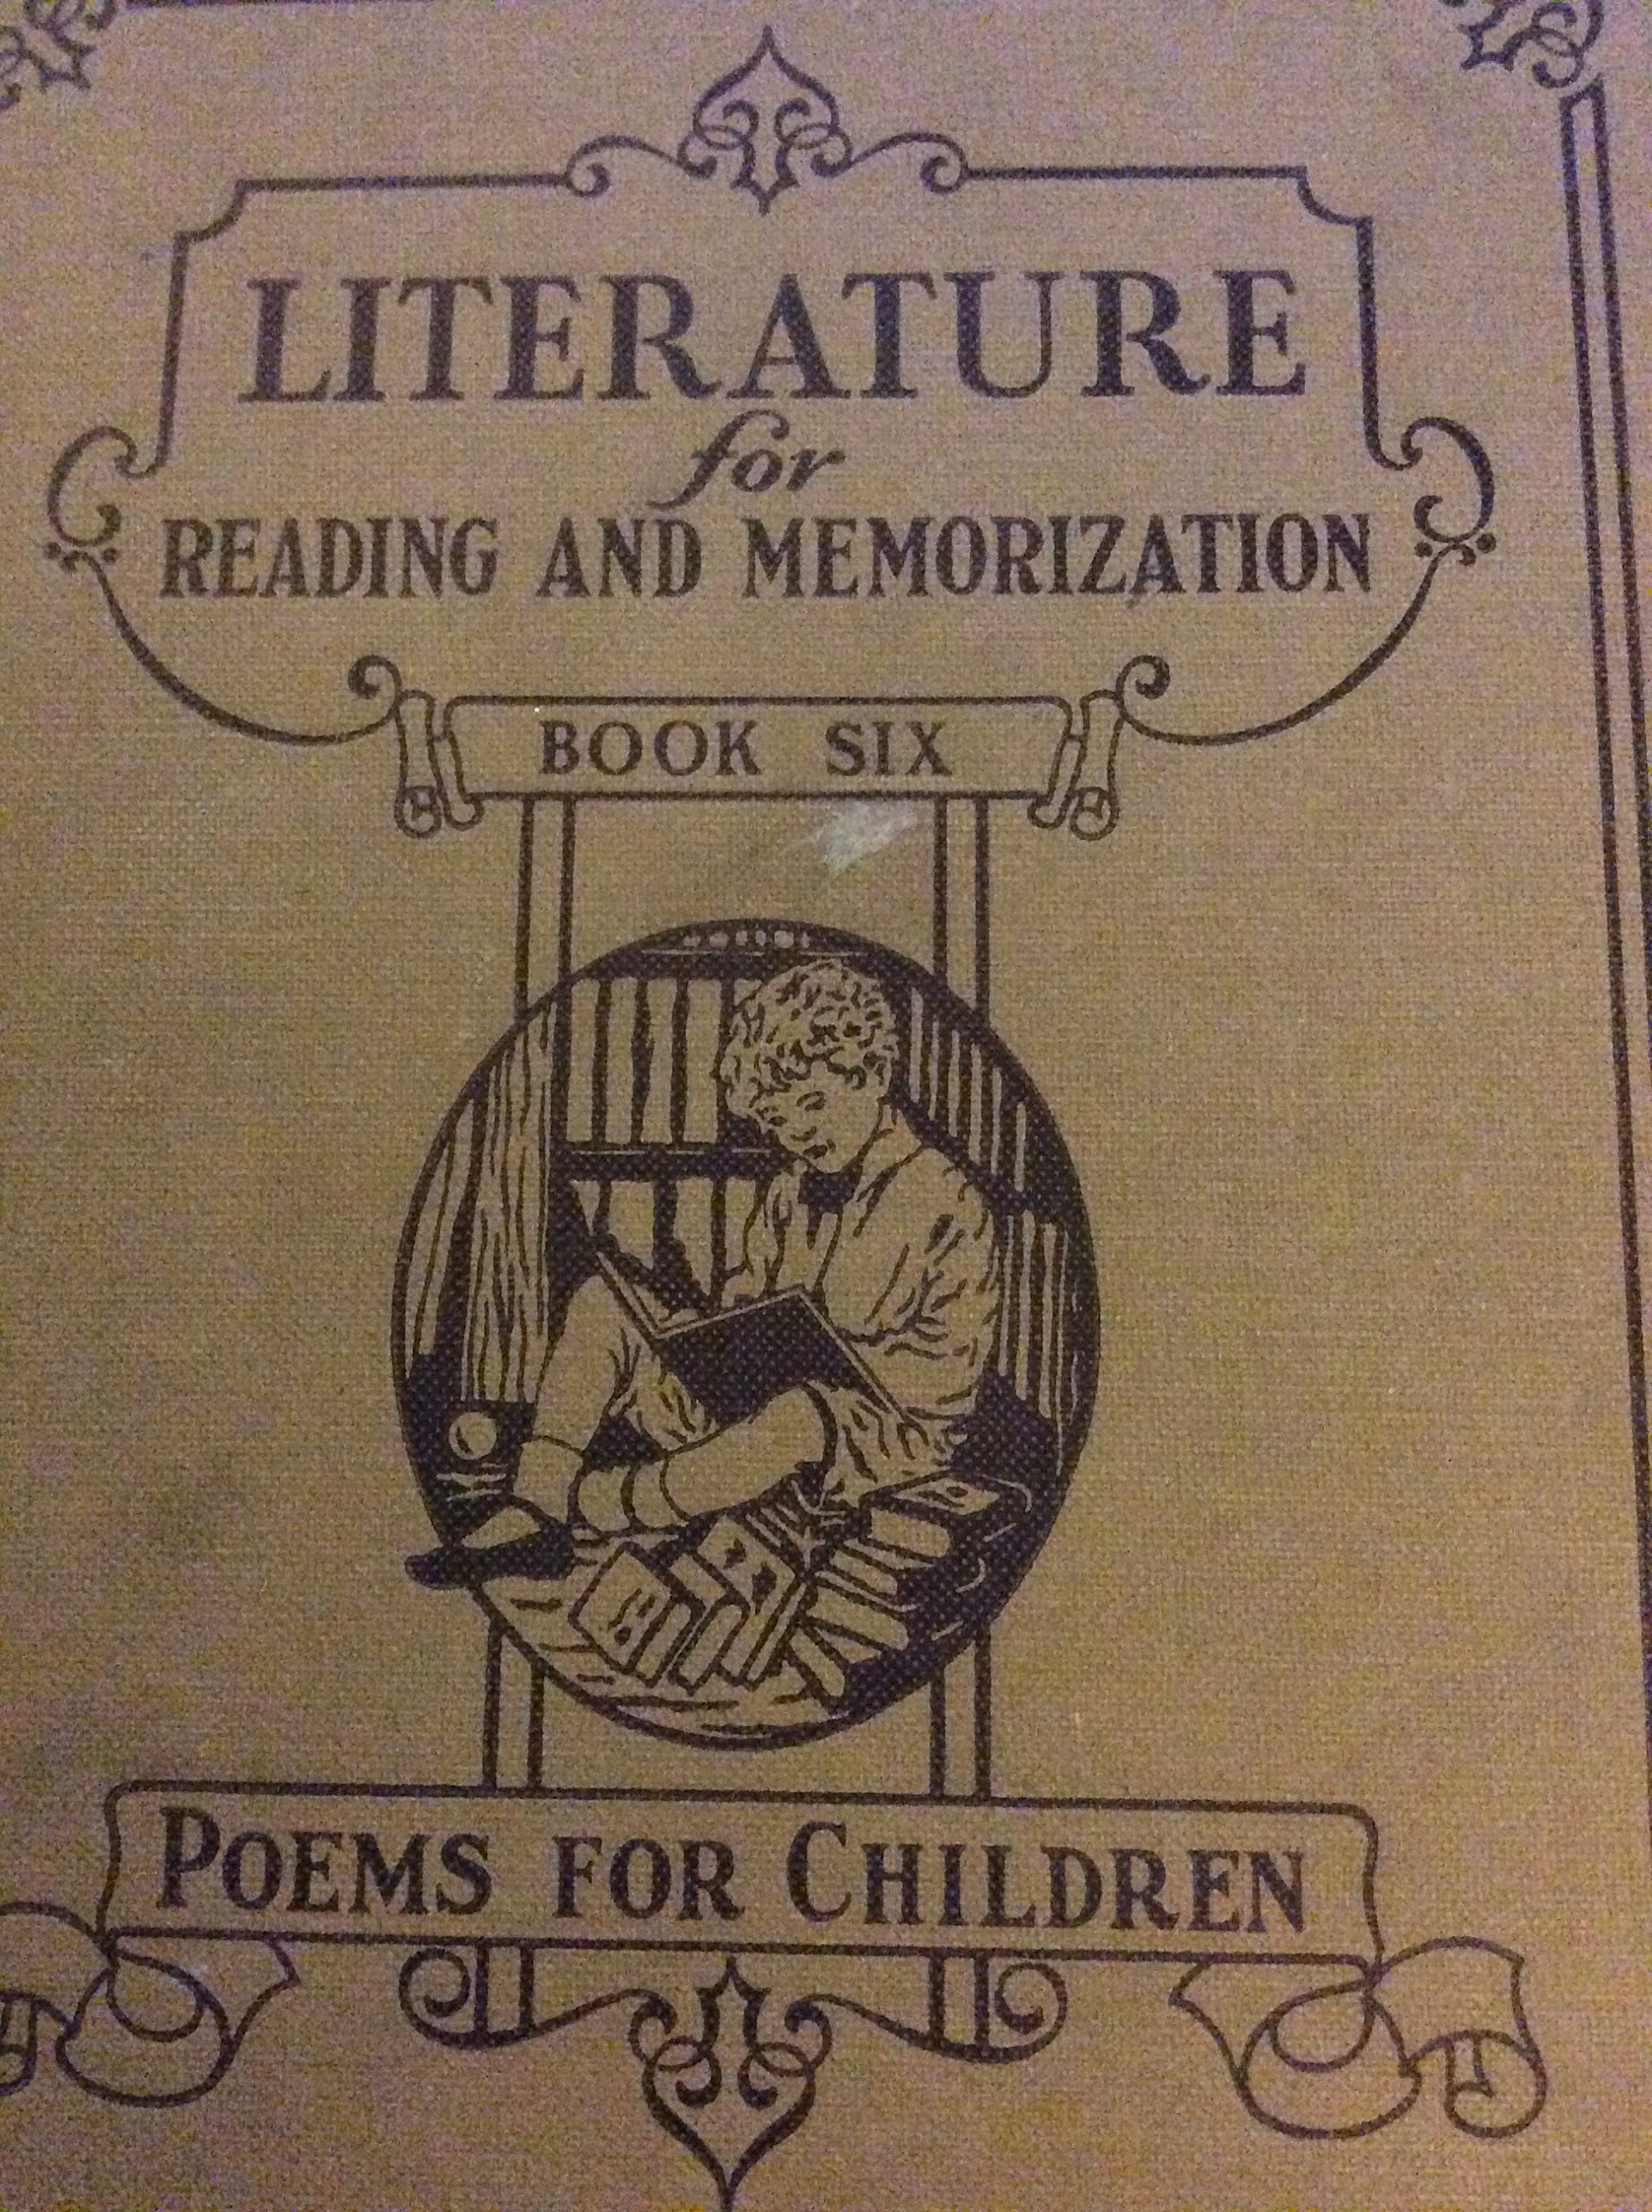 Literature For Reading And Memorization Poems For Children Book Six